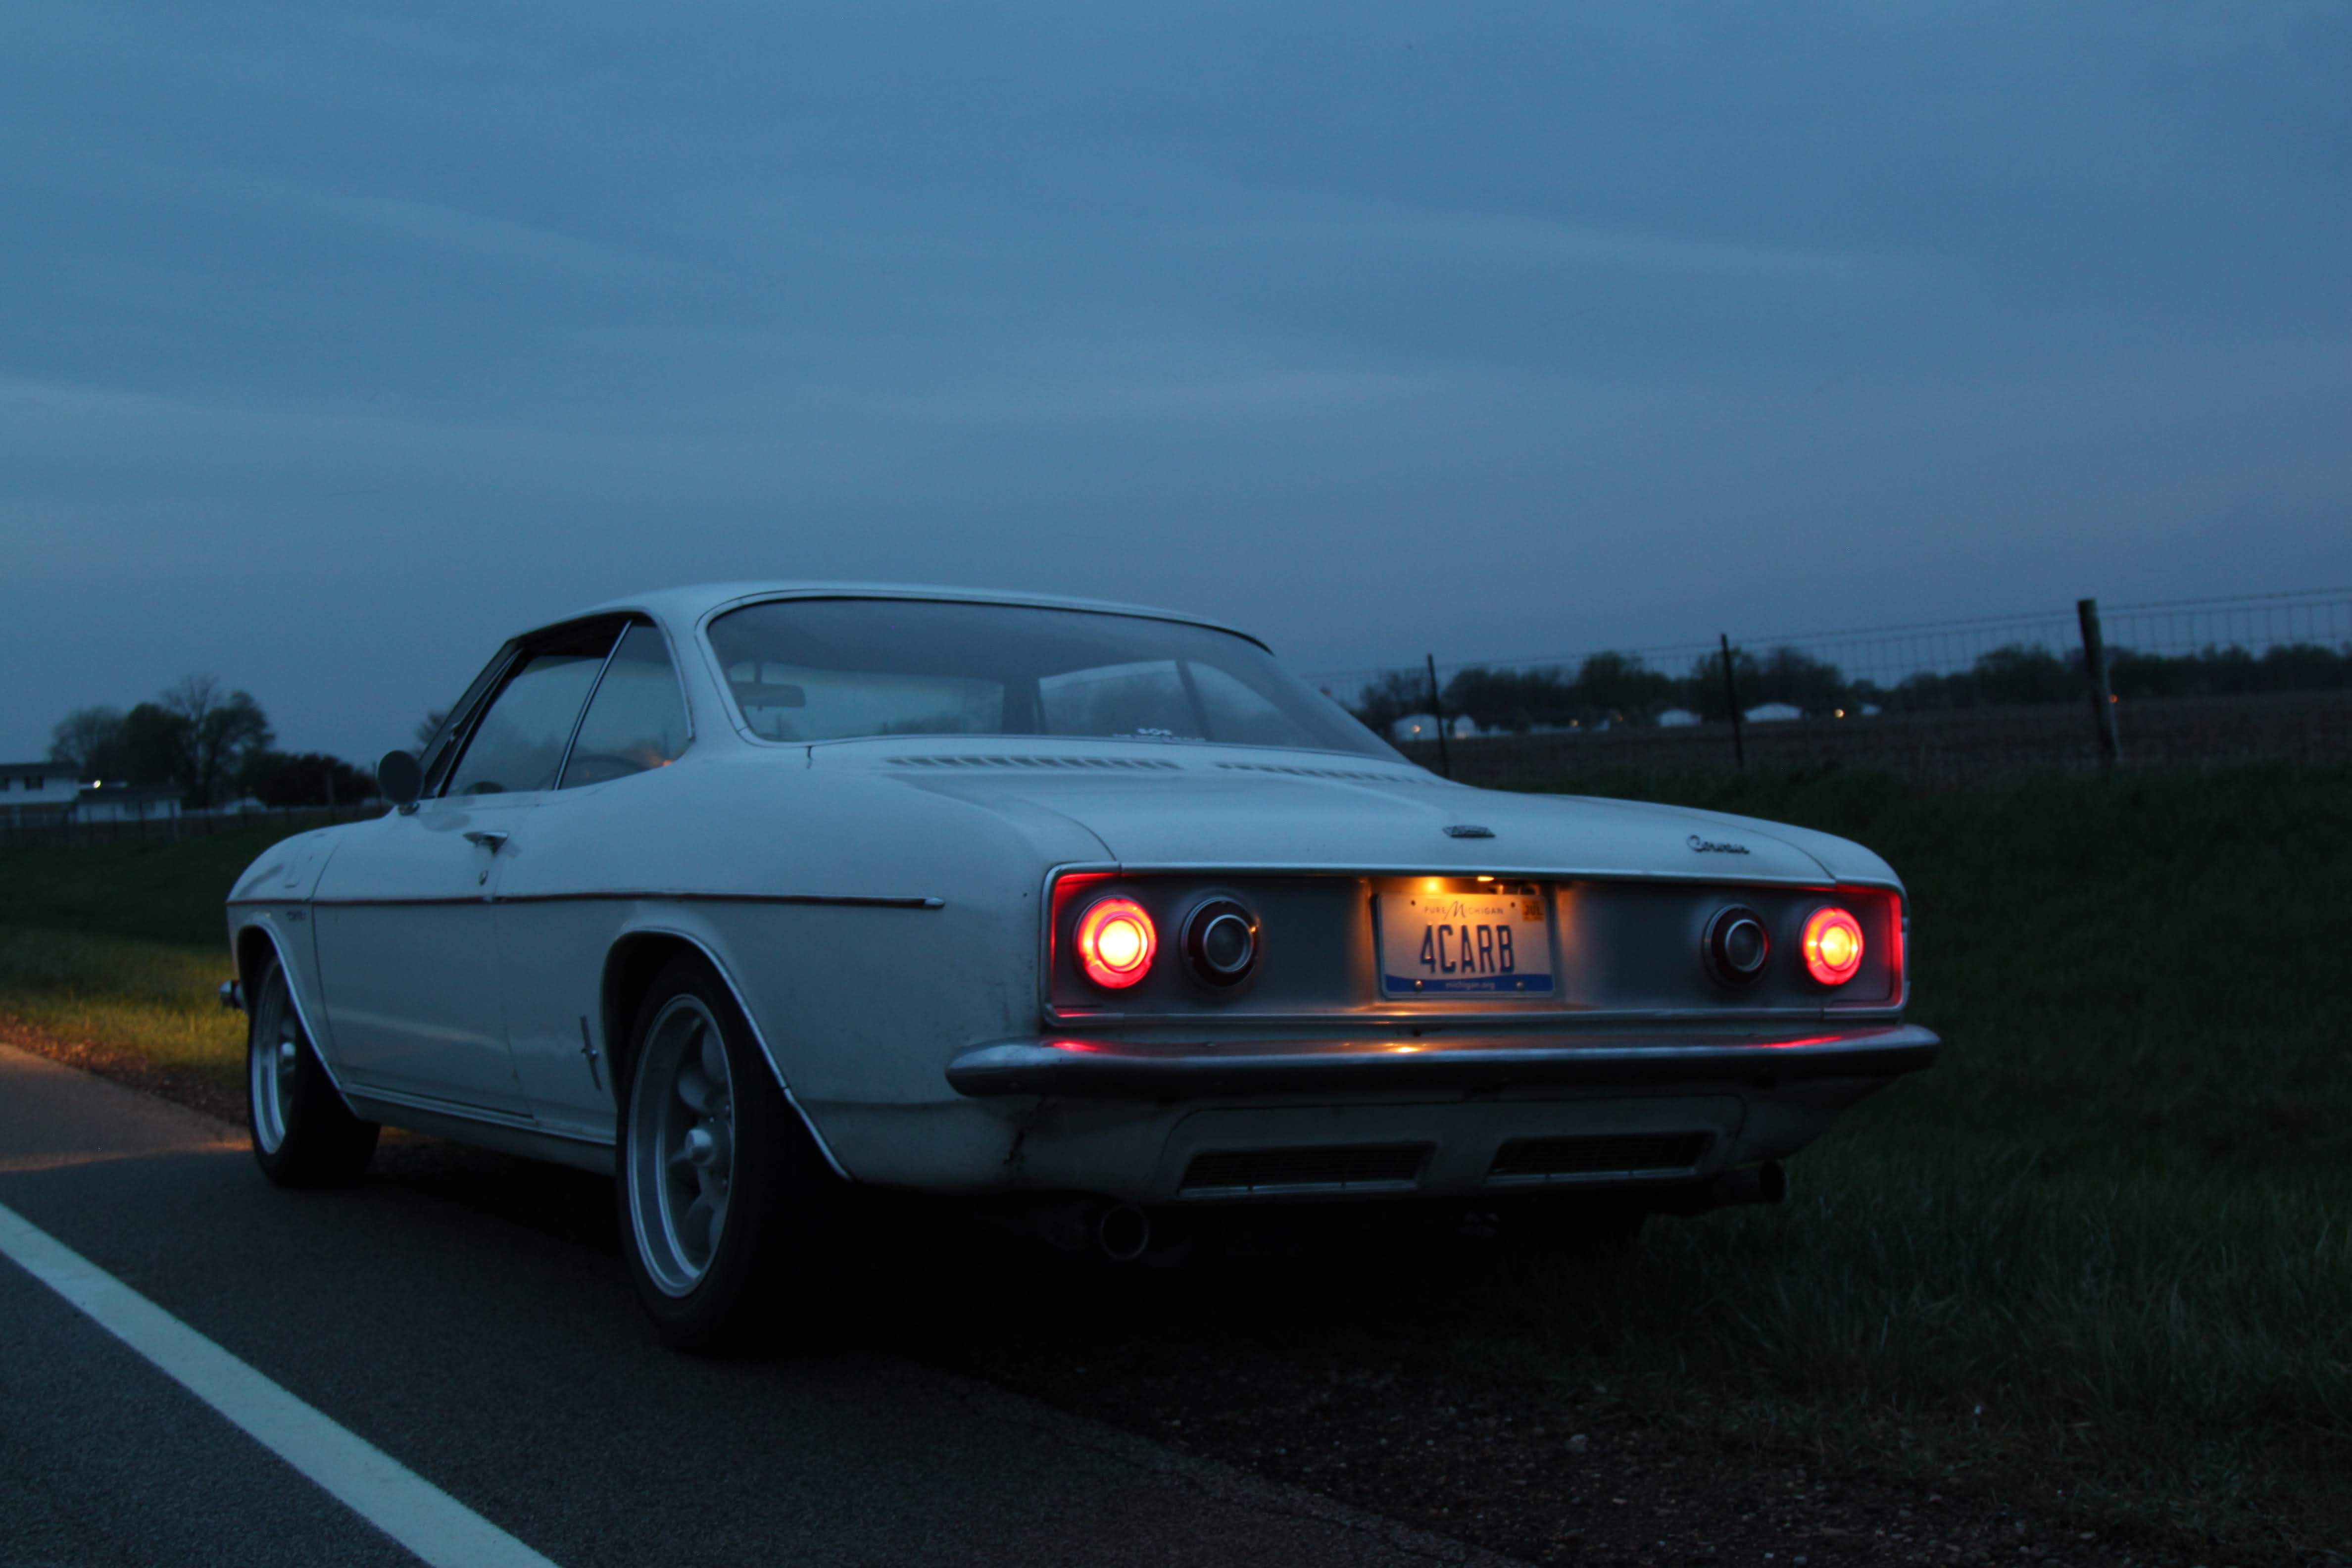 With a storm rolling in the skies were dark, but the cool air kept the air cooled engine happy